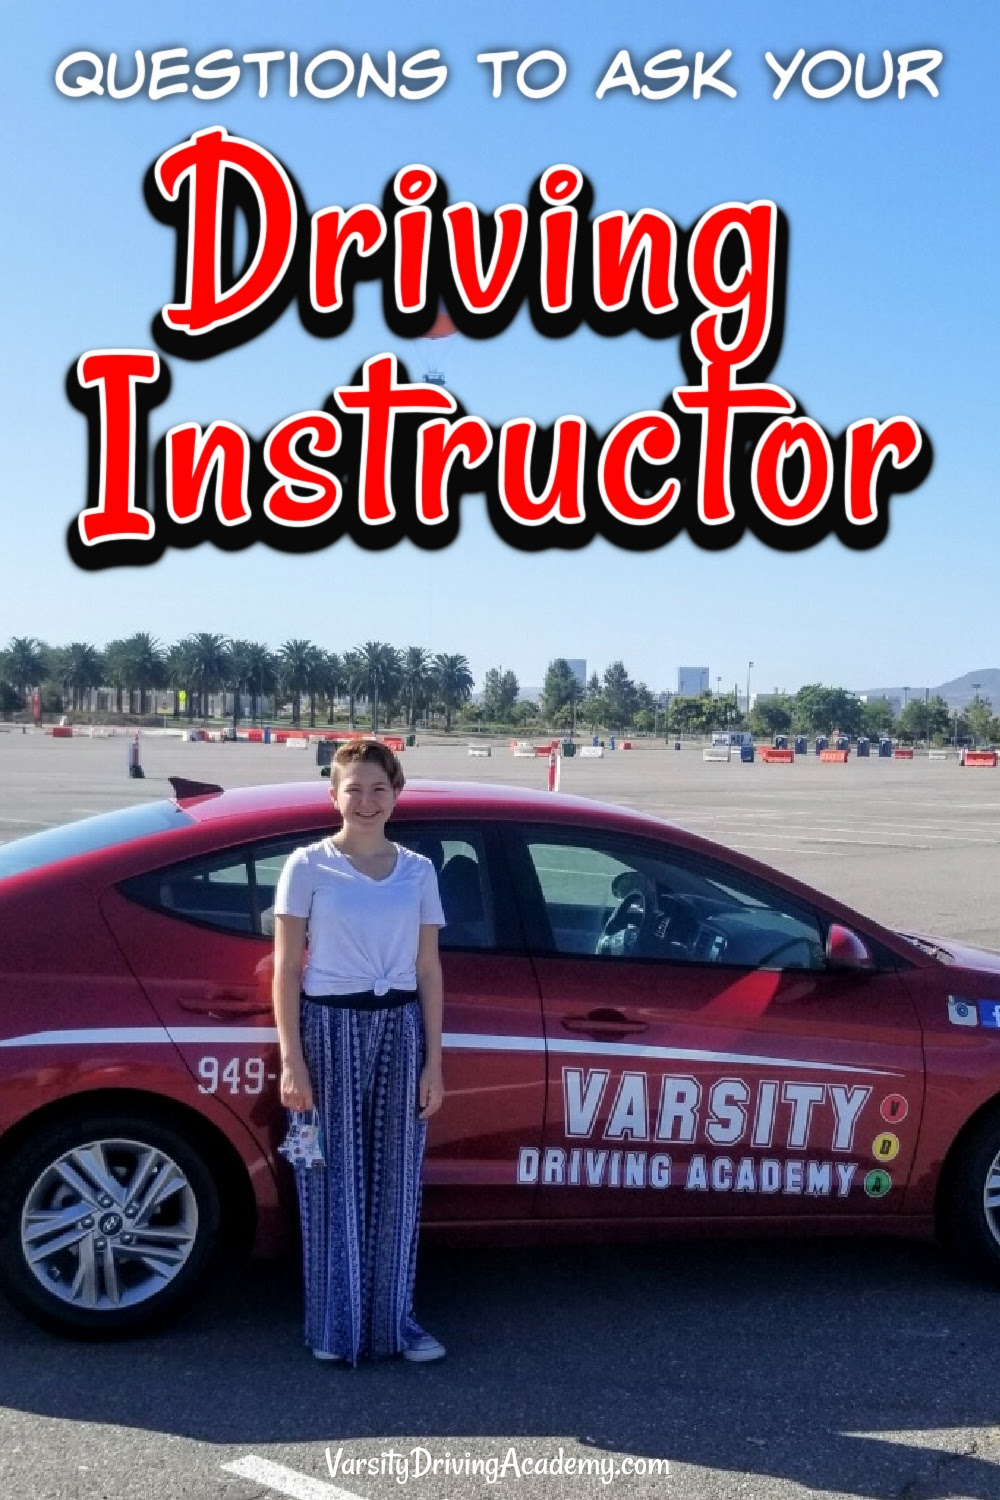 The questions you should ask your driving instructor could make the difference in what school you attend or how well you do on tests.